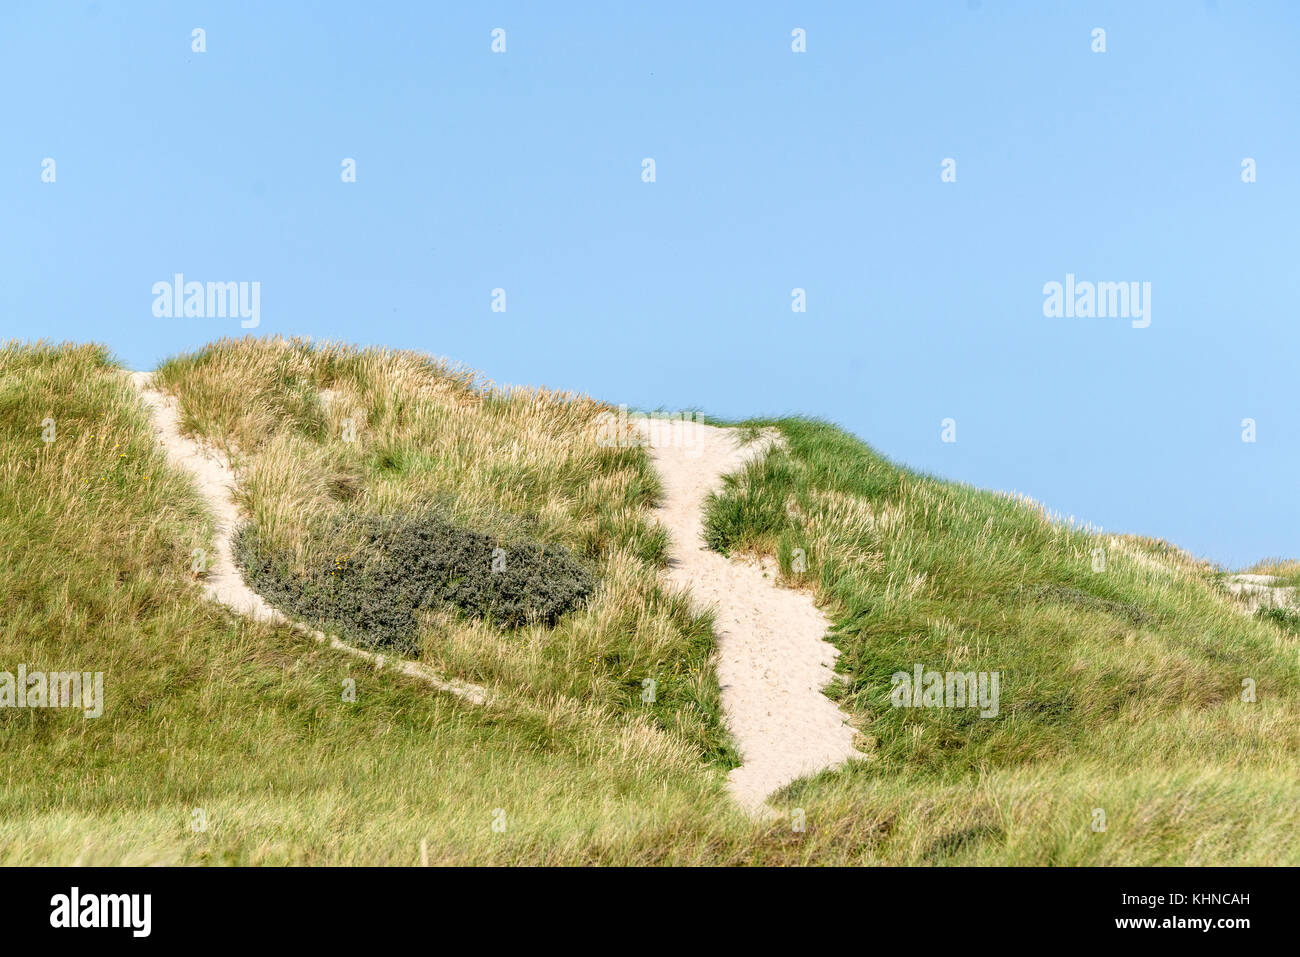 Sand dune in Denmark covered with green lyme grass near the sea - Stock Image